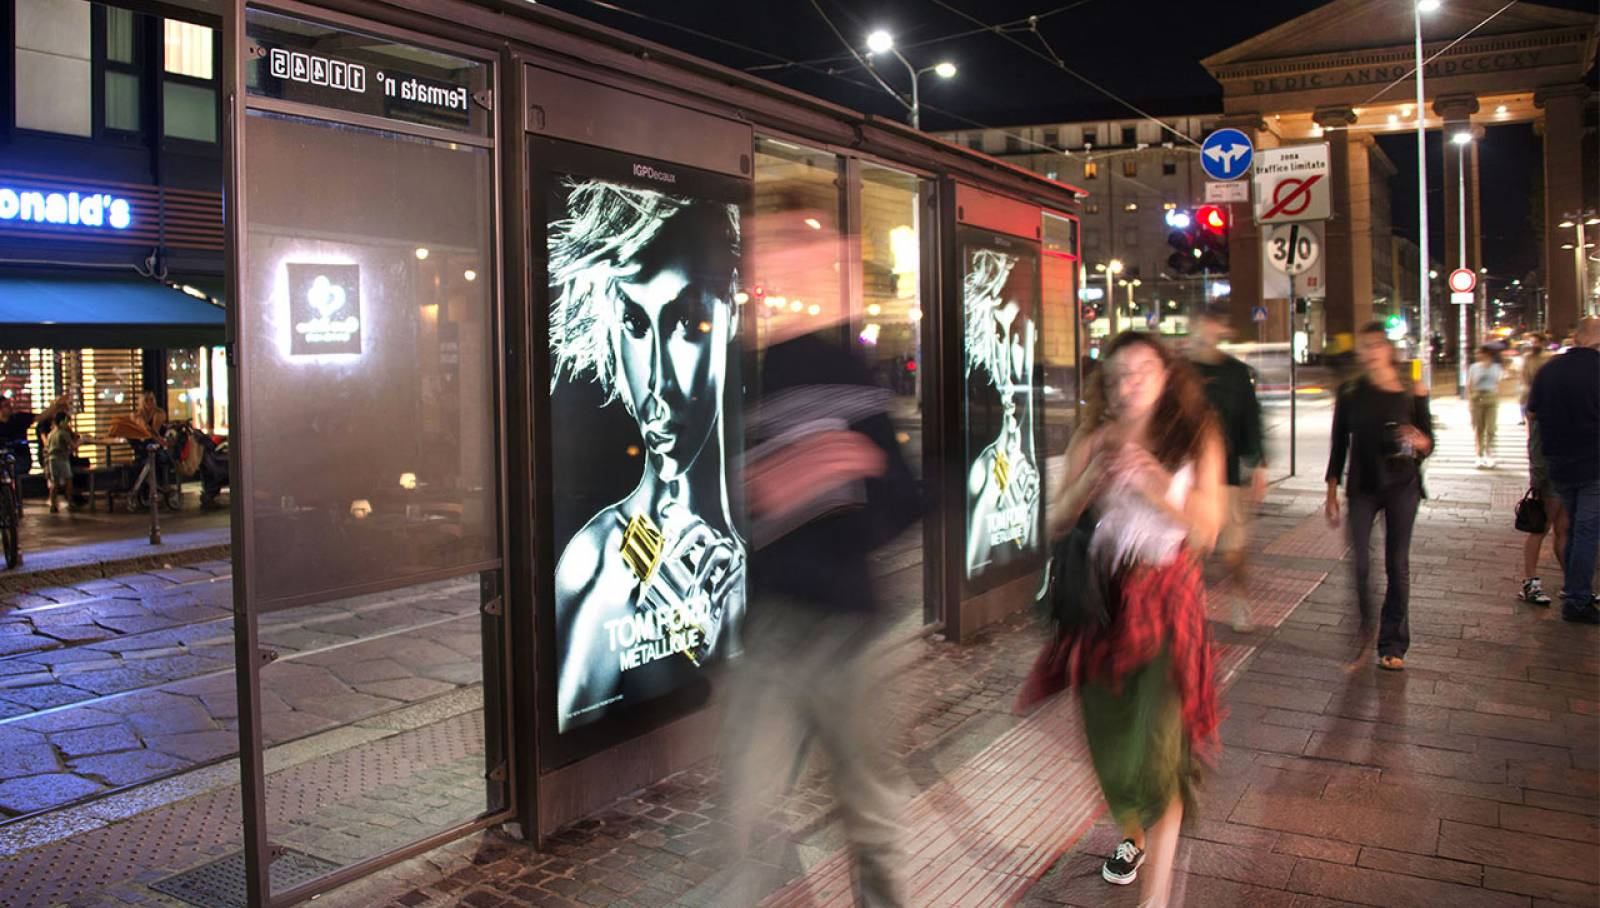 Bus shelters in Milan for Tom Ford IGPDecaux OOH Advertising